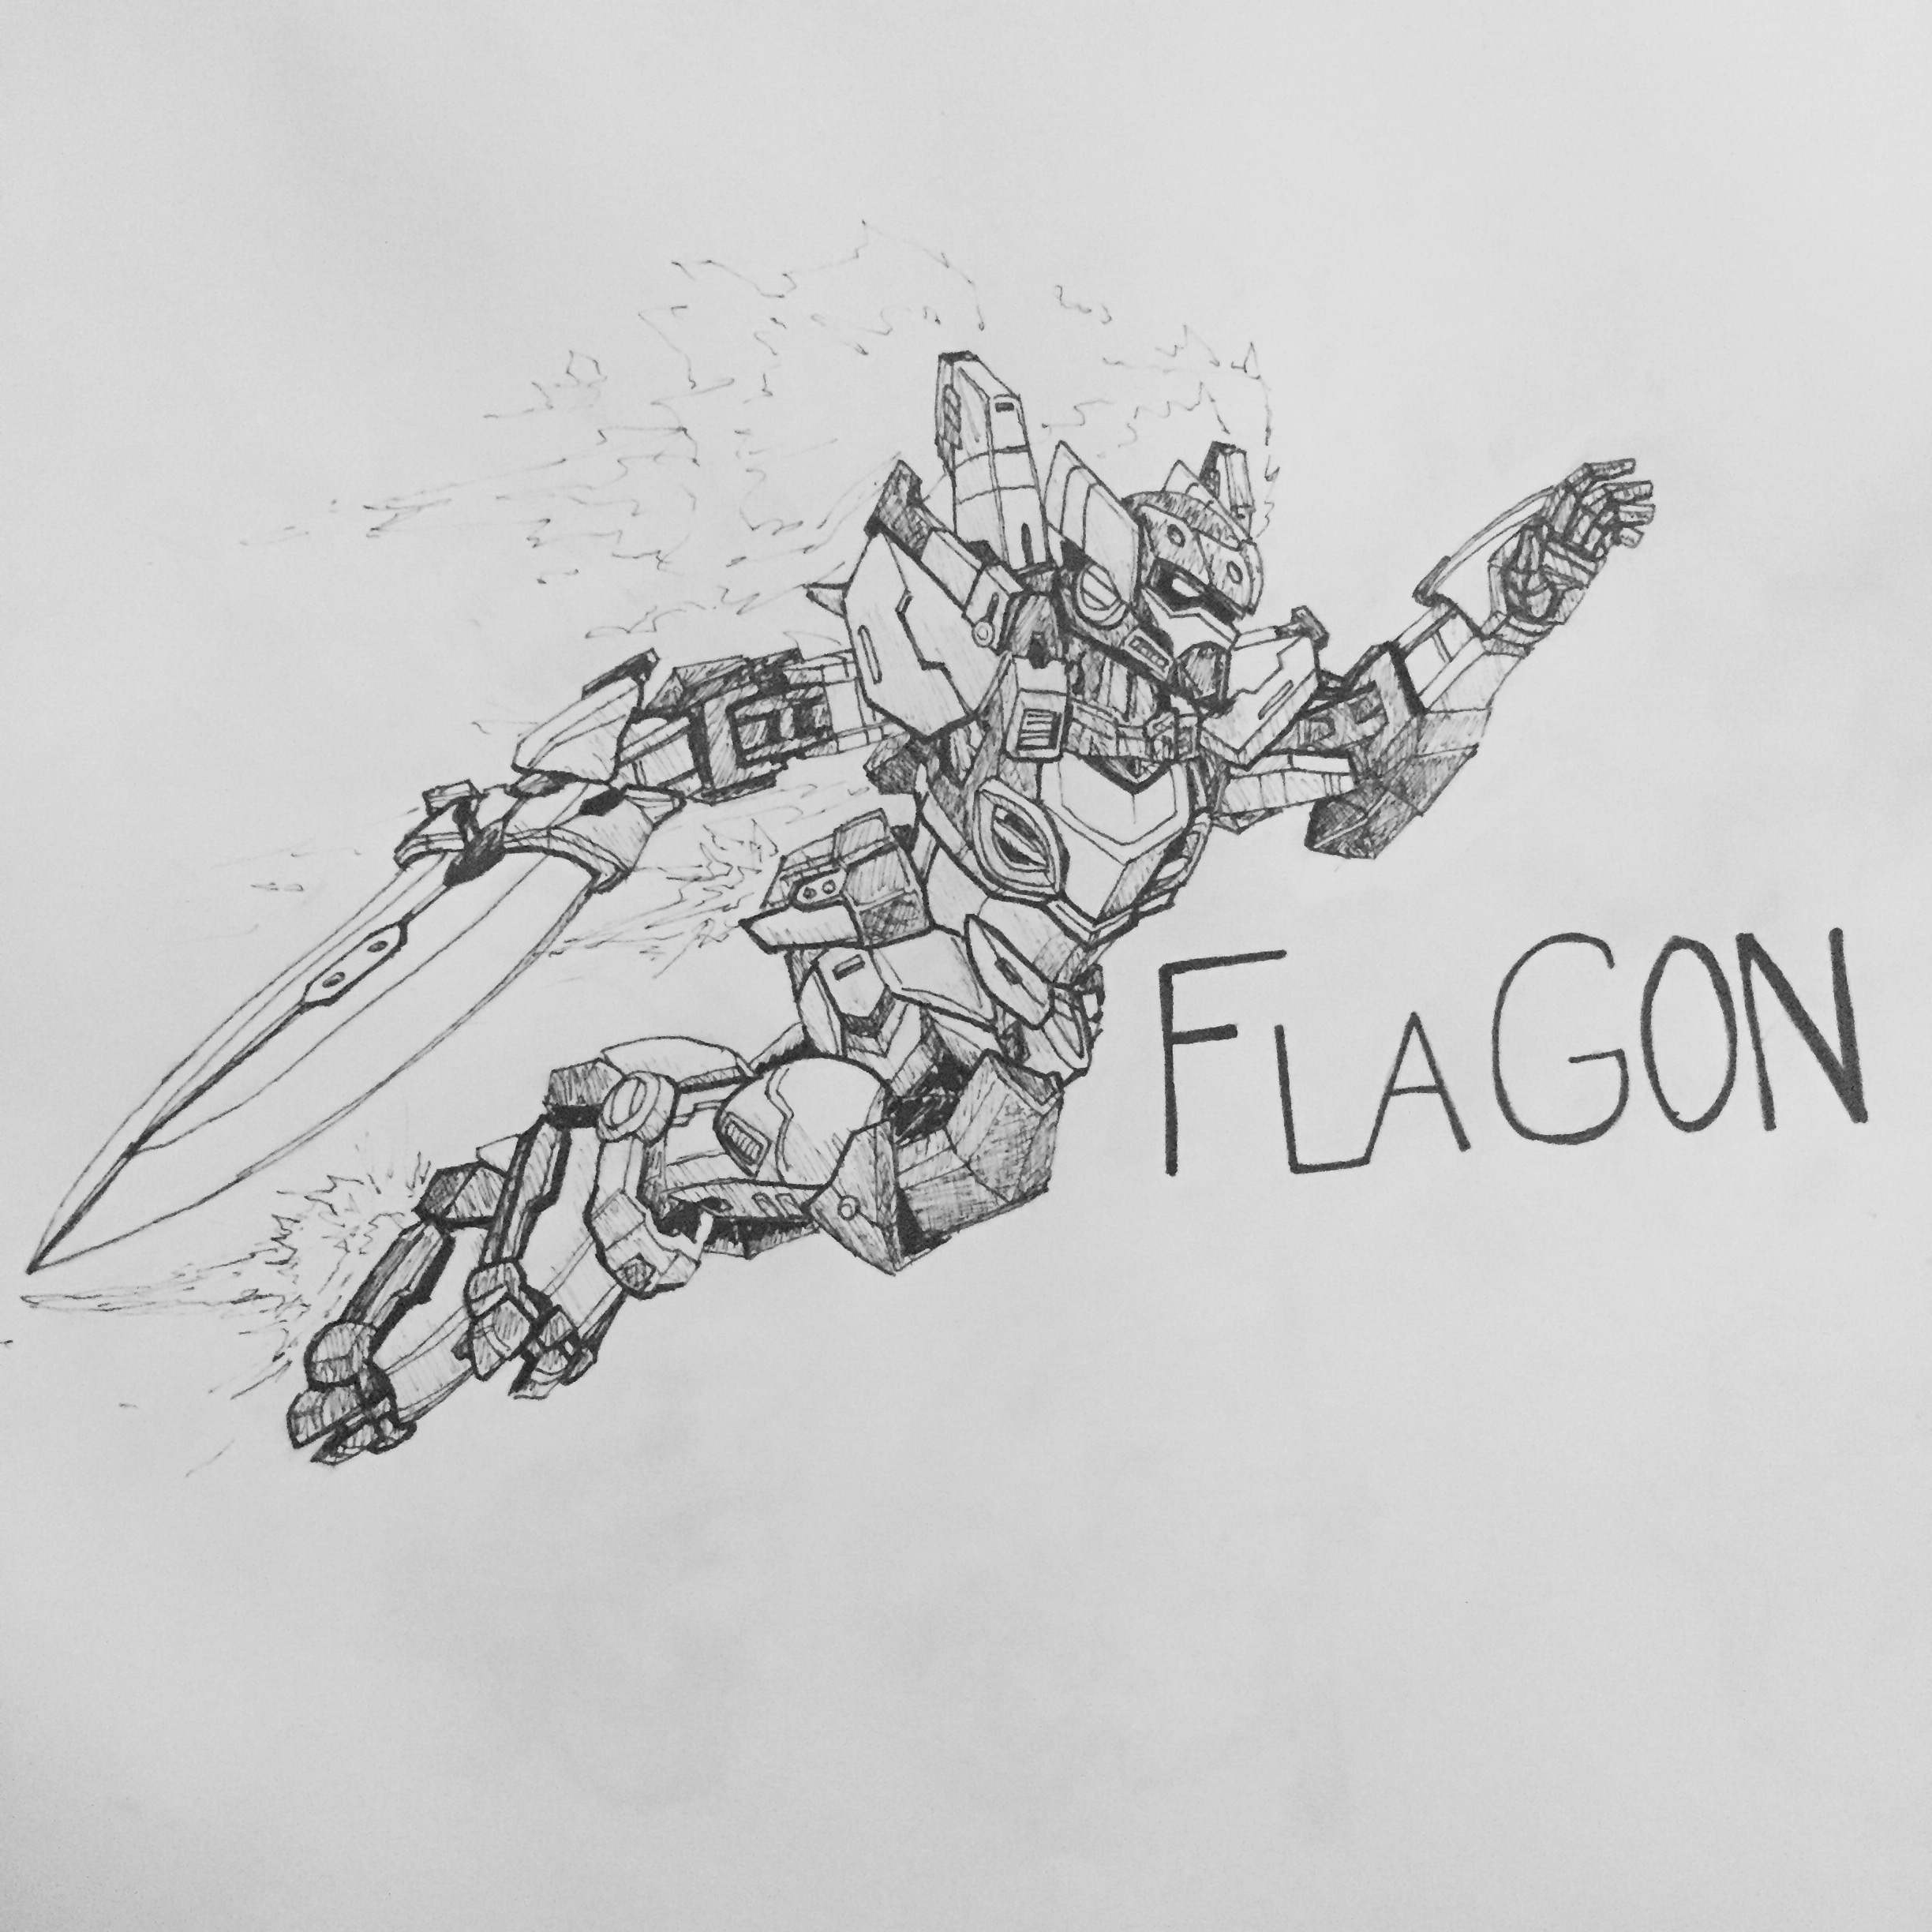 Inktober Day 6: Flagon